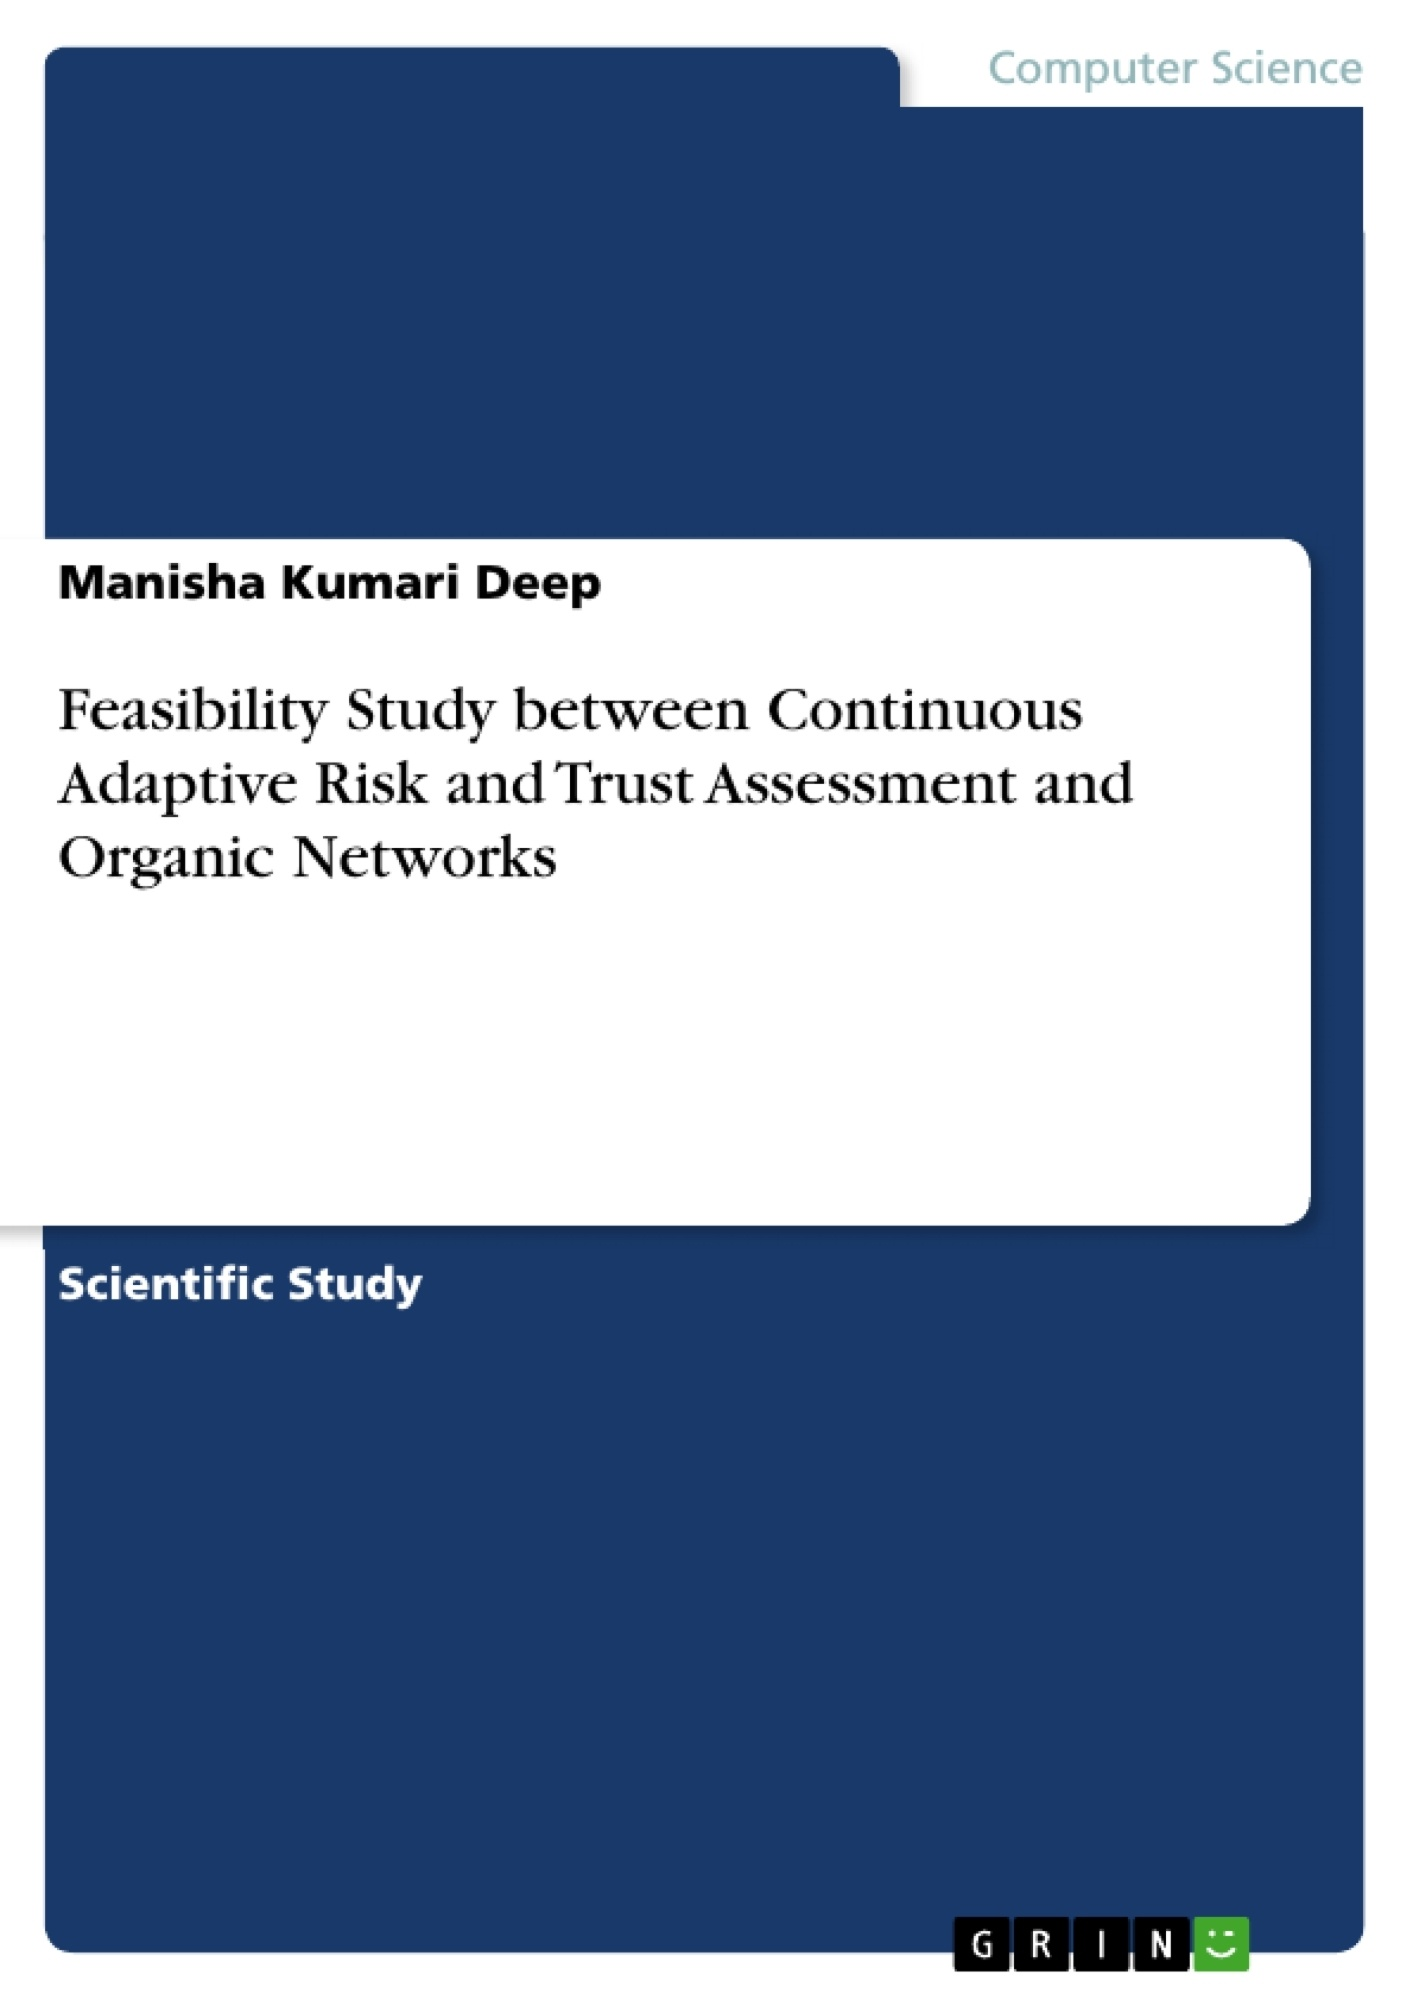 Title: Feasibility Study between Continuous Adaptive Risk and Trust Assessment and Organic Networks